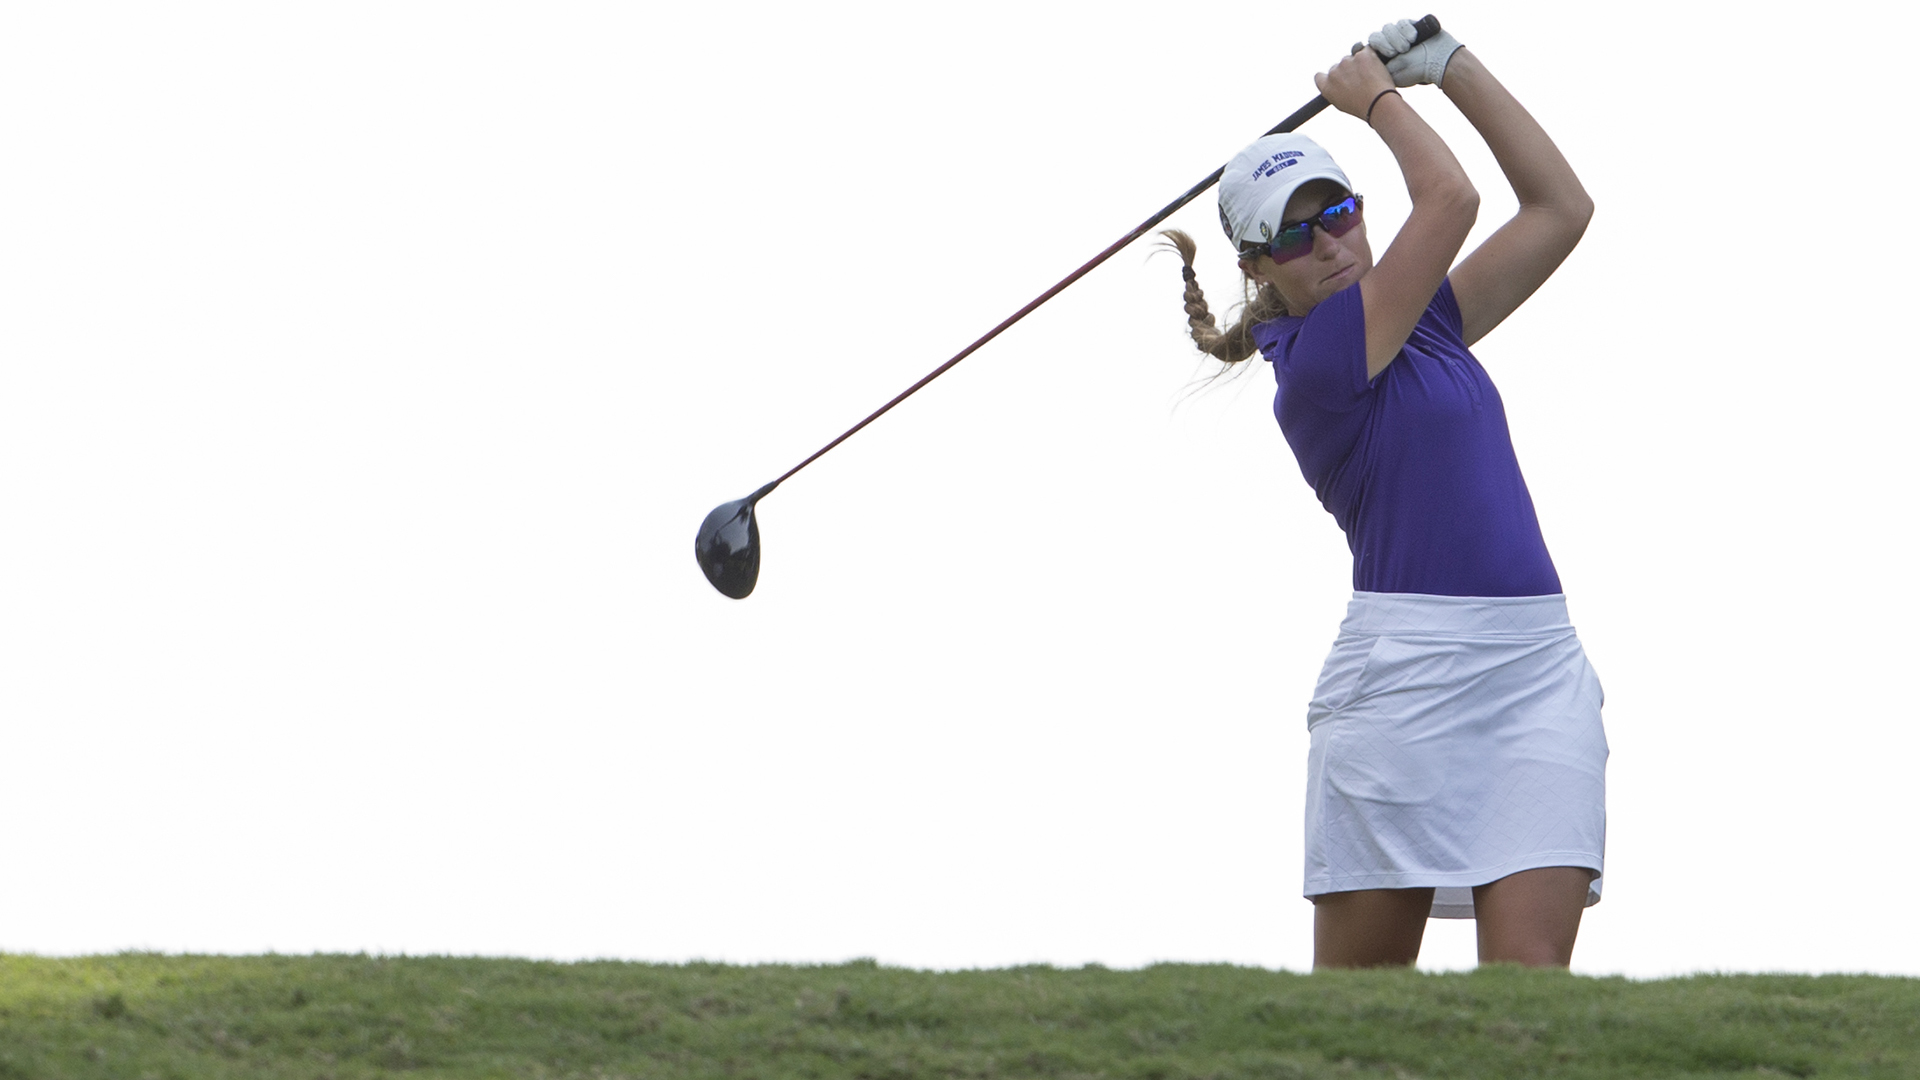 Women's Golf: Weiss, Dukes Close Out Play at Lady Paladin Invite